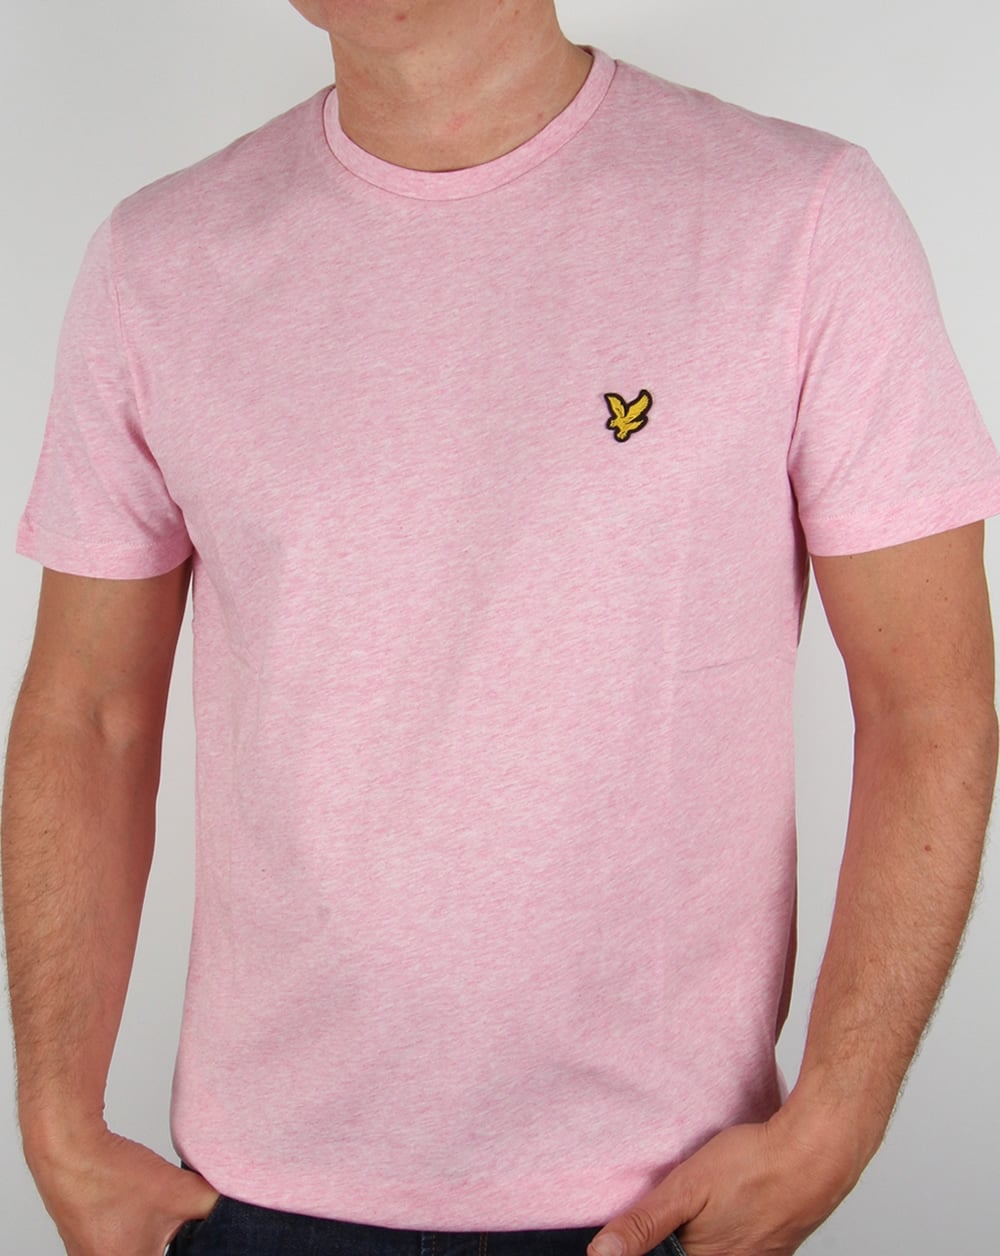 Lyle and scott t shirt mid pink marl tee mens crew neck for Lyle and scott shirt sale